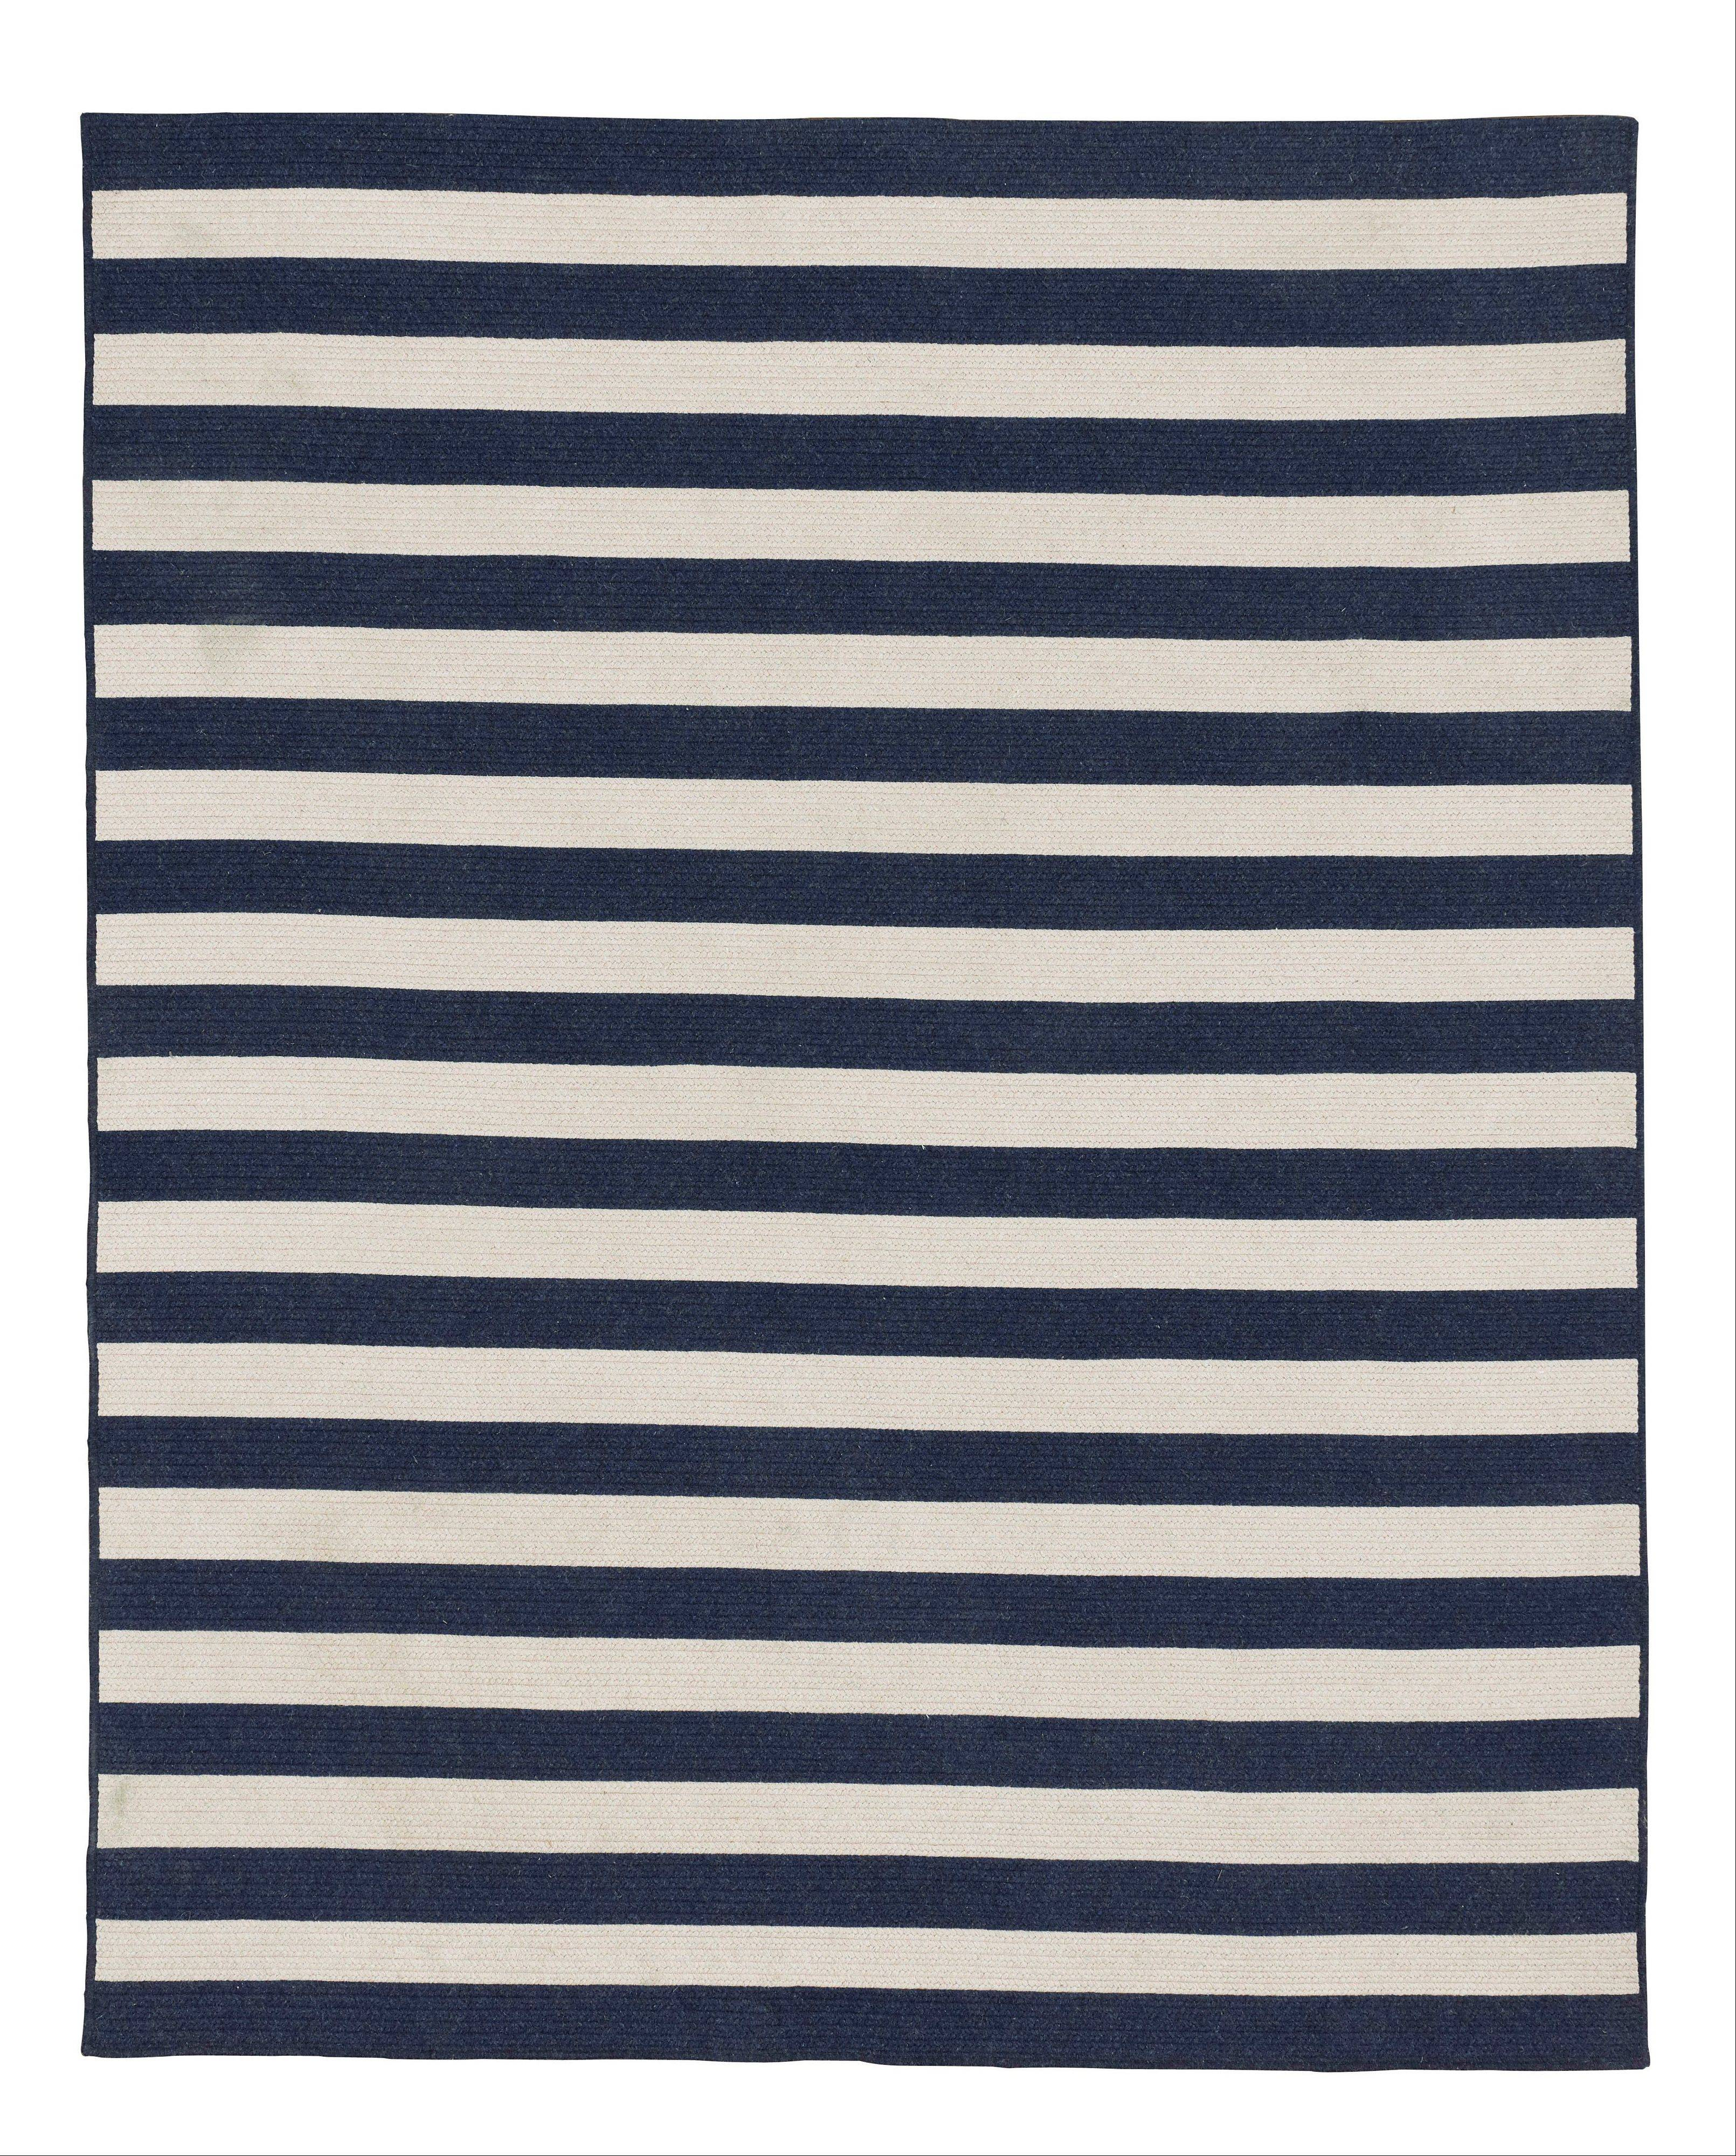 A bold striped, braided wool rug is a great way to introduce navy to a room (www.rhbabyandchild.com). With bold pops of color, or a few soothing neutrals, navy is a fresh trend worth exploring this spring.